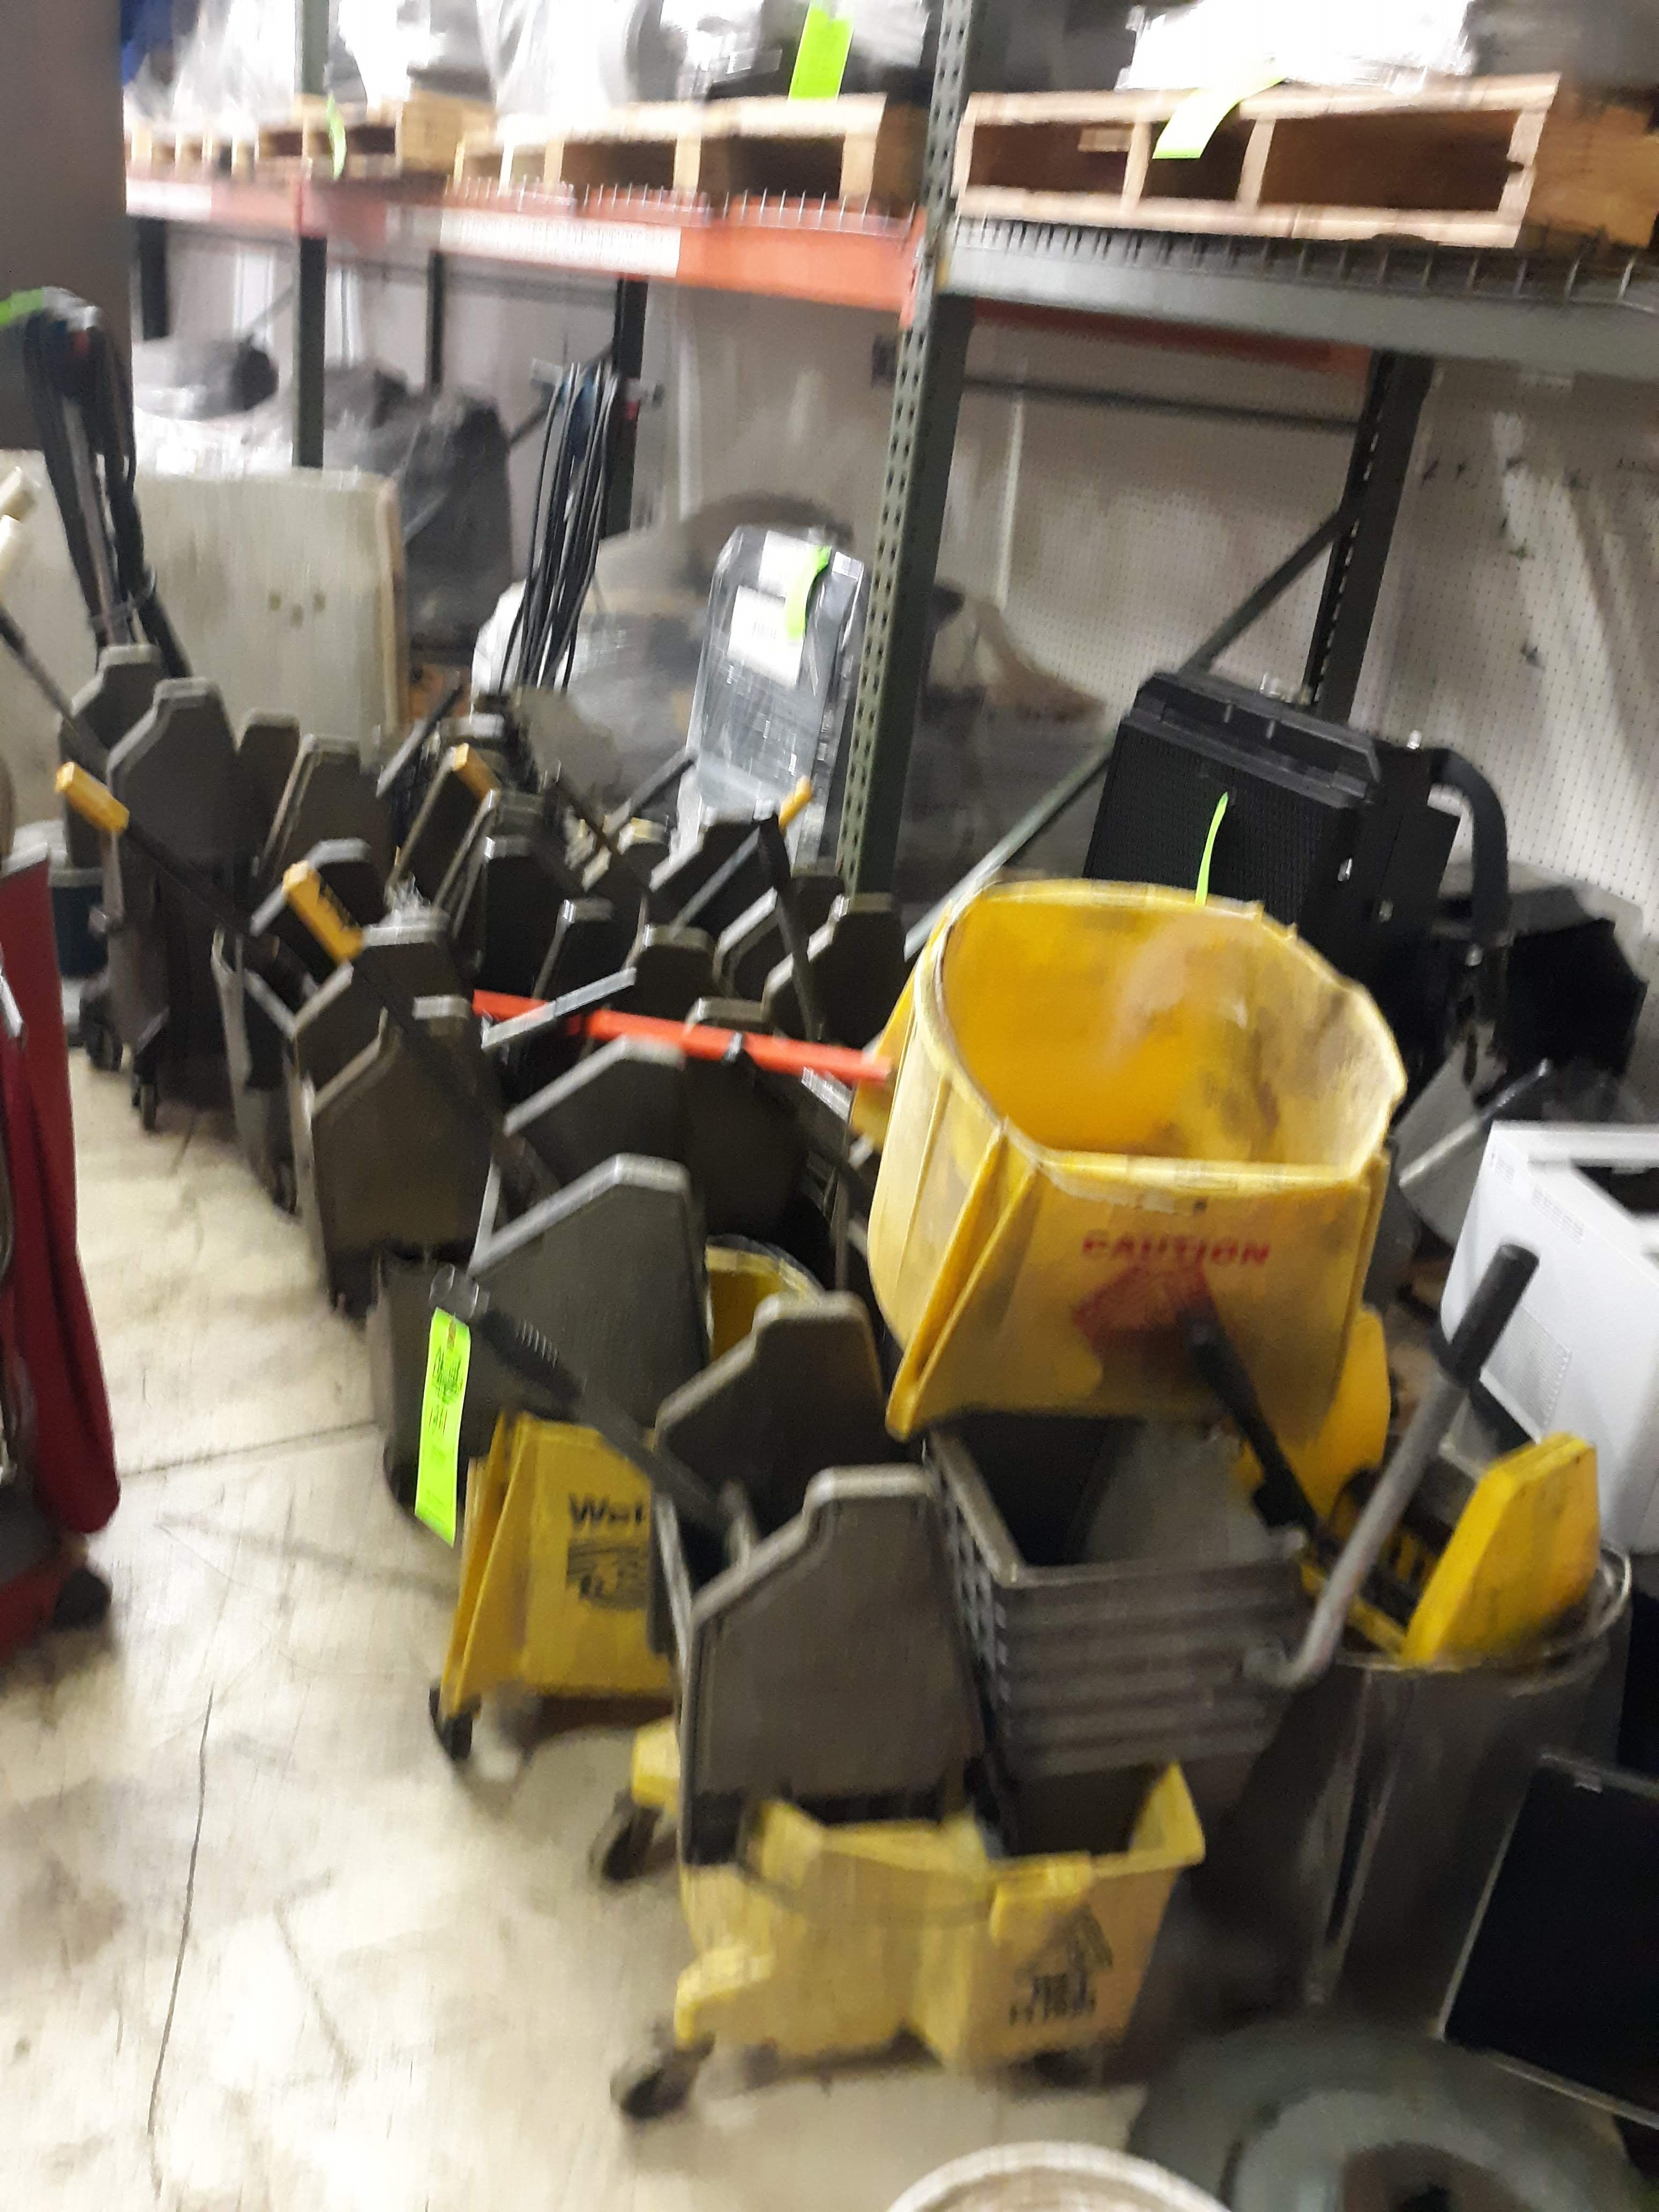 (12) MOP BUCKET (LOCATED AT: 432 COUNCIL DRIVE, FORT WAYNE, IN 46825)